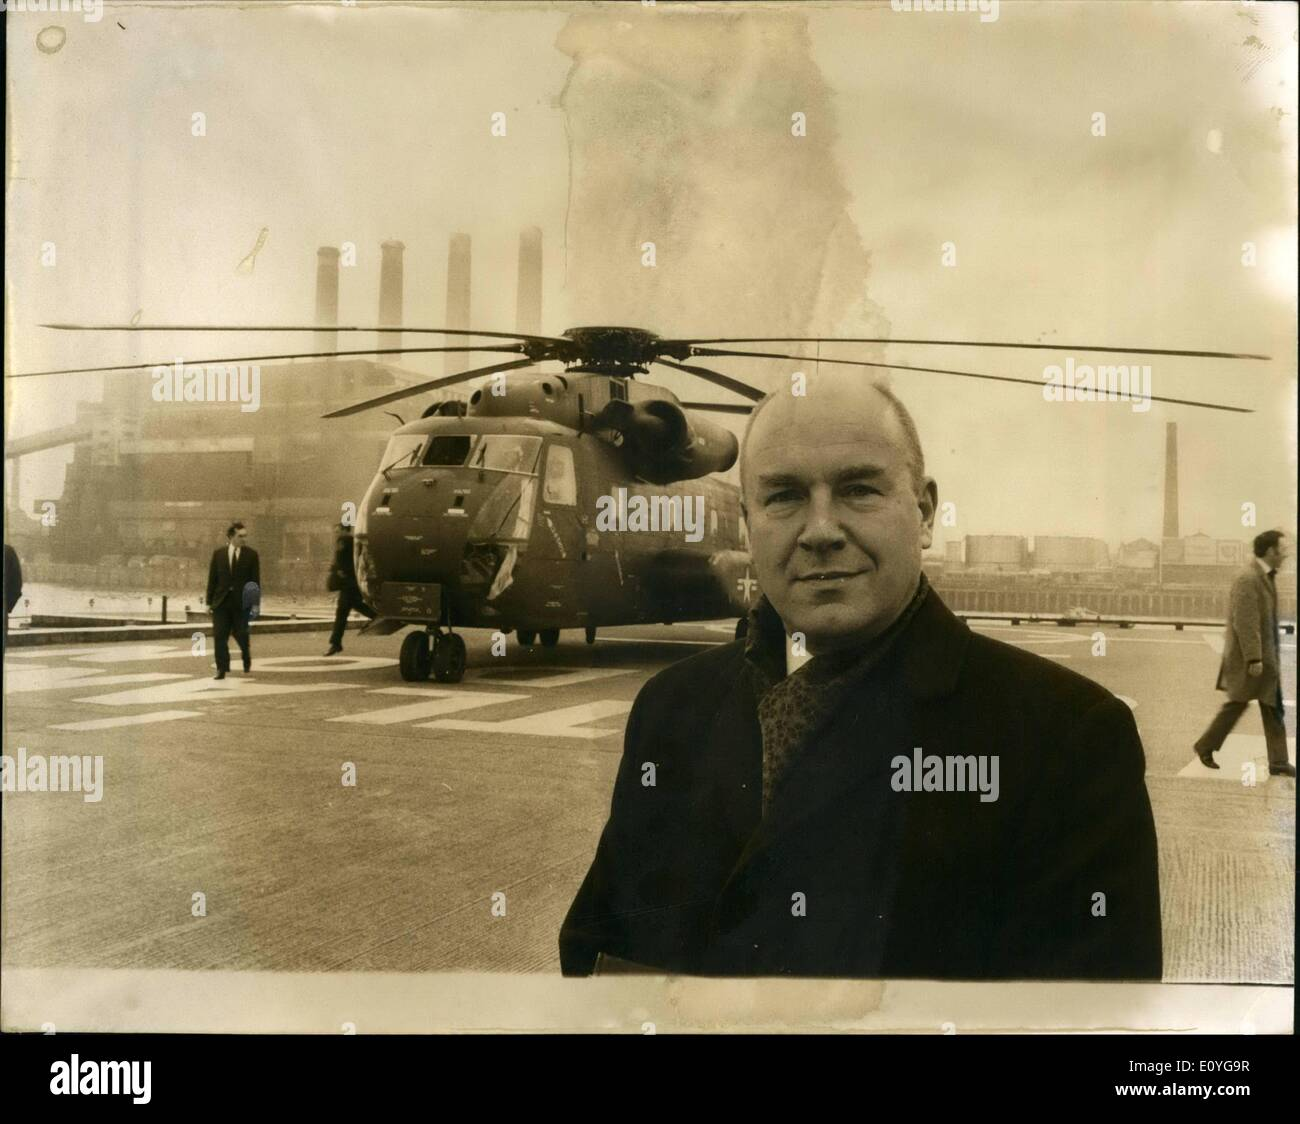 Apr. 04, 1970 - Demonstration Helicopter Flight from London to Paris.: The United States Marines loaned a Sikorsky S-65 helicopter, to carry over 30 aviation VIP's from Battersea Heliport, on a demonstration flight to Issy-les Moulineaux, in Paris, to shows its potential as a commercial airliner for shot-haul service. The S-65 helicopter can demonstrate the feasilibilty of economic air travel between the centres of these two cities in less than one and one-half hours. Photo shows Sergei I - Stock Image